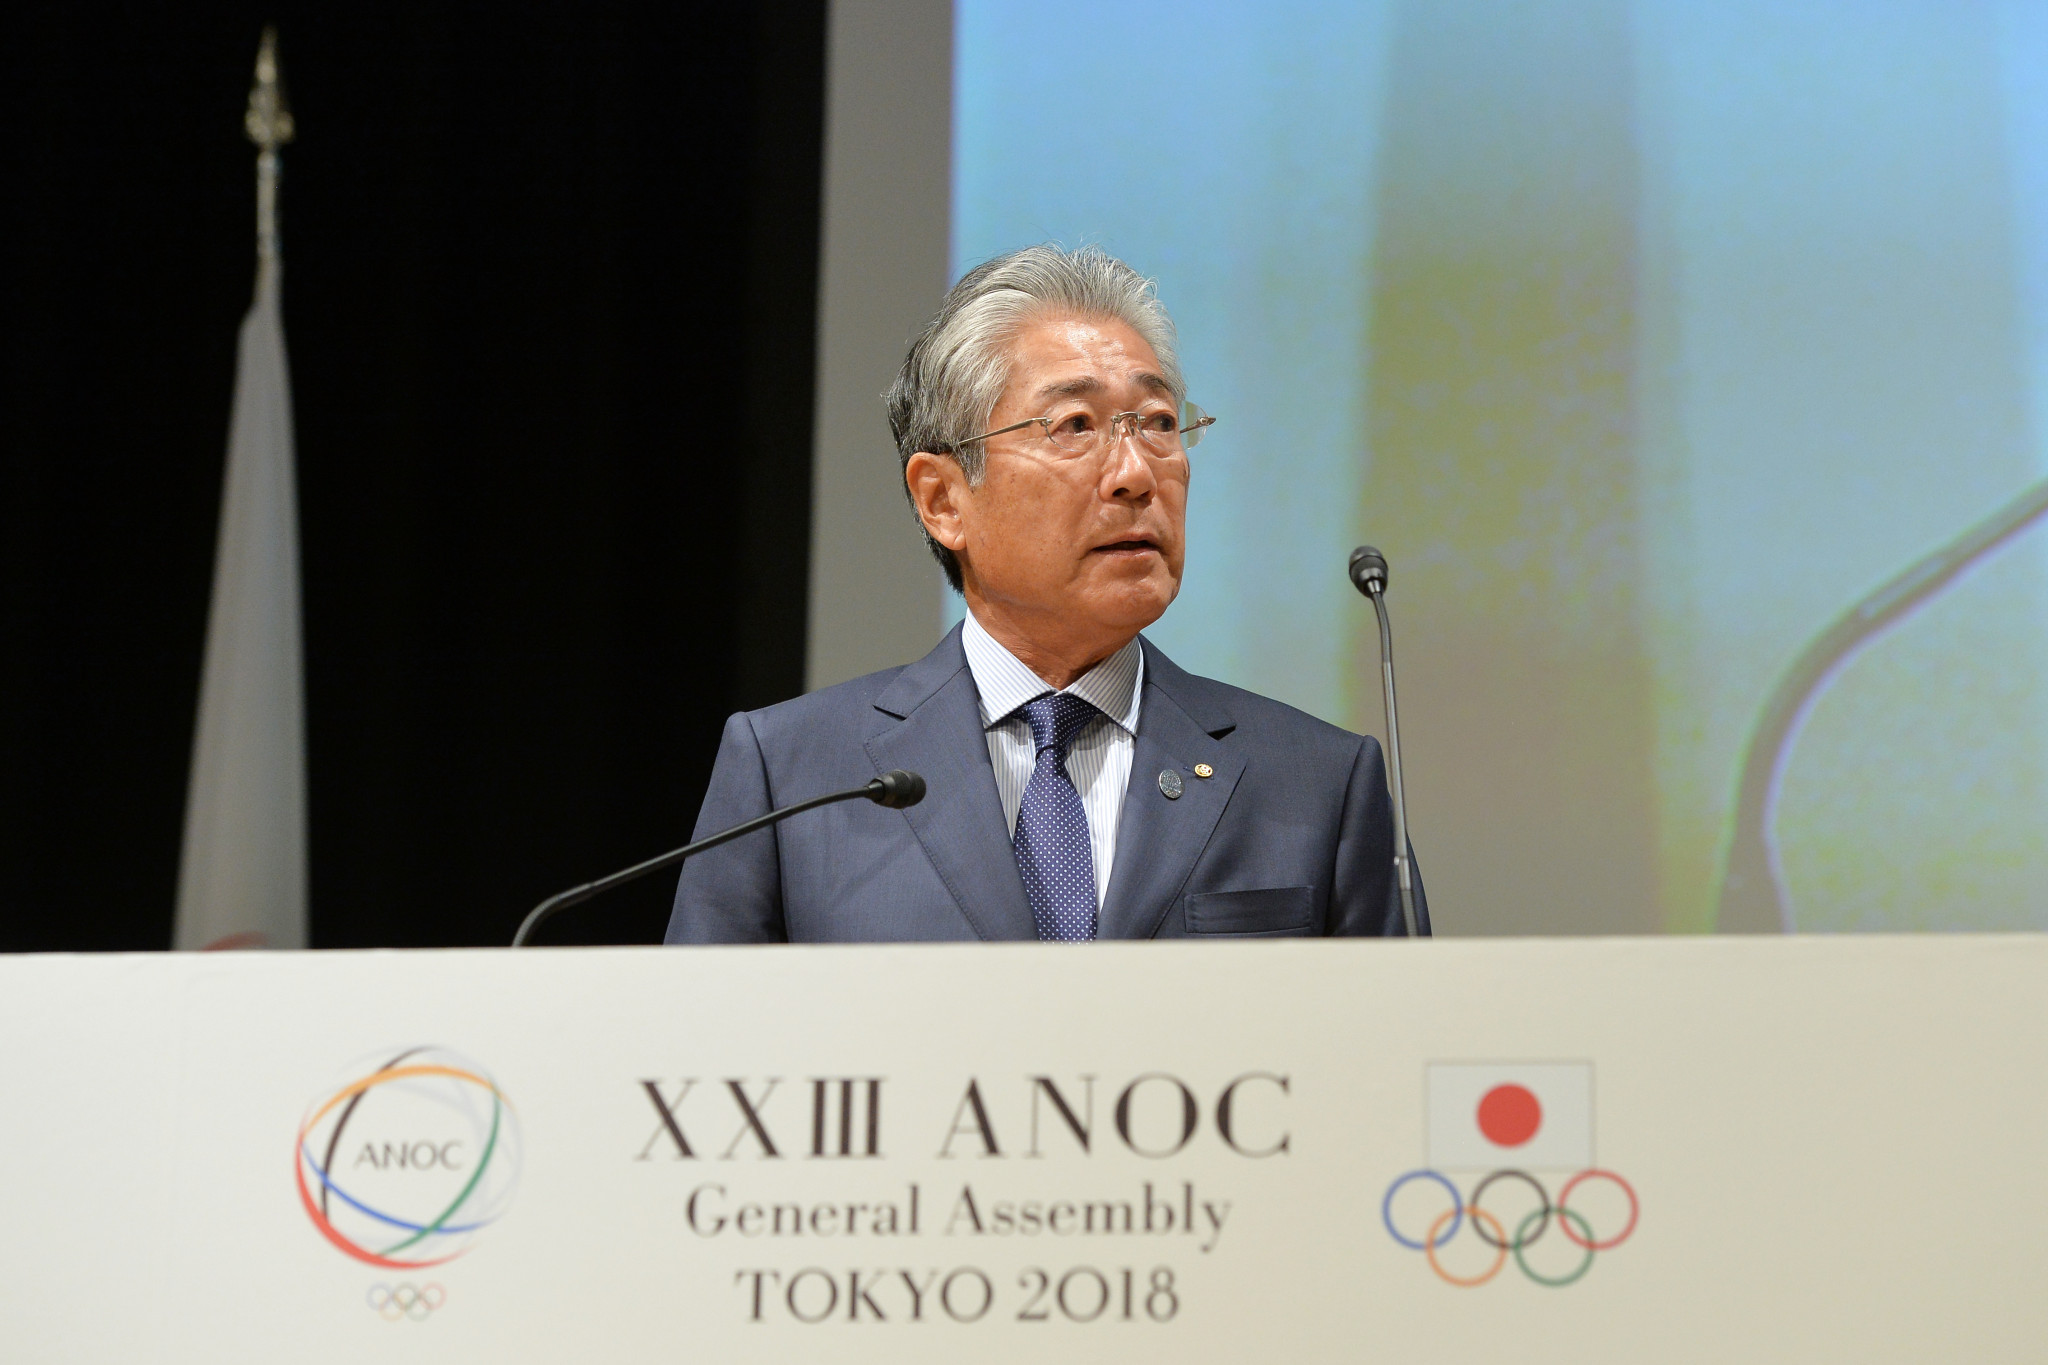 JOC President Tsunekazu Takeda is subject to a formal investigation from French prosecutors ©Getty Images